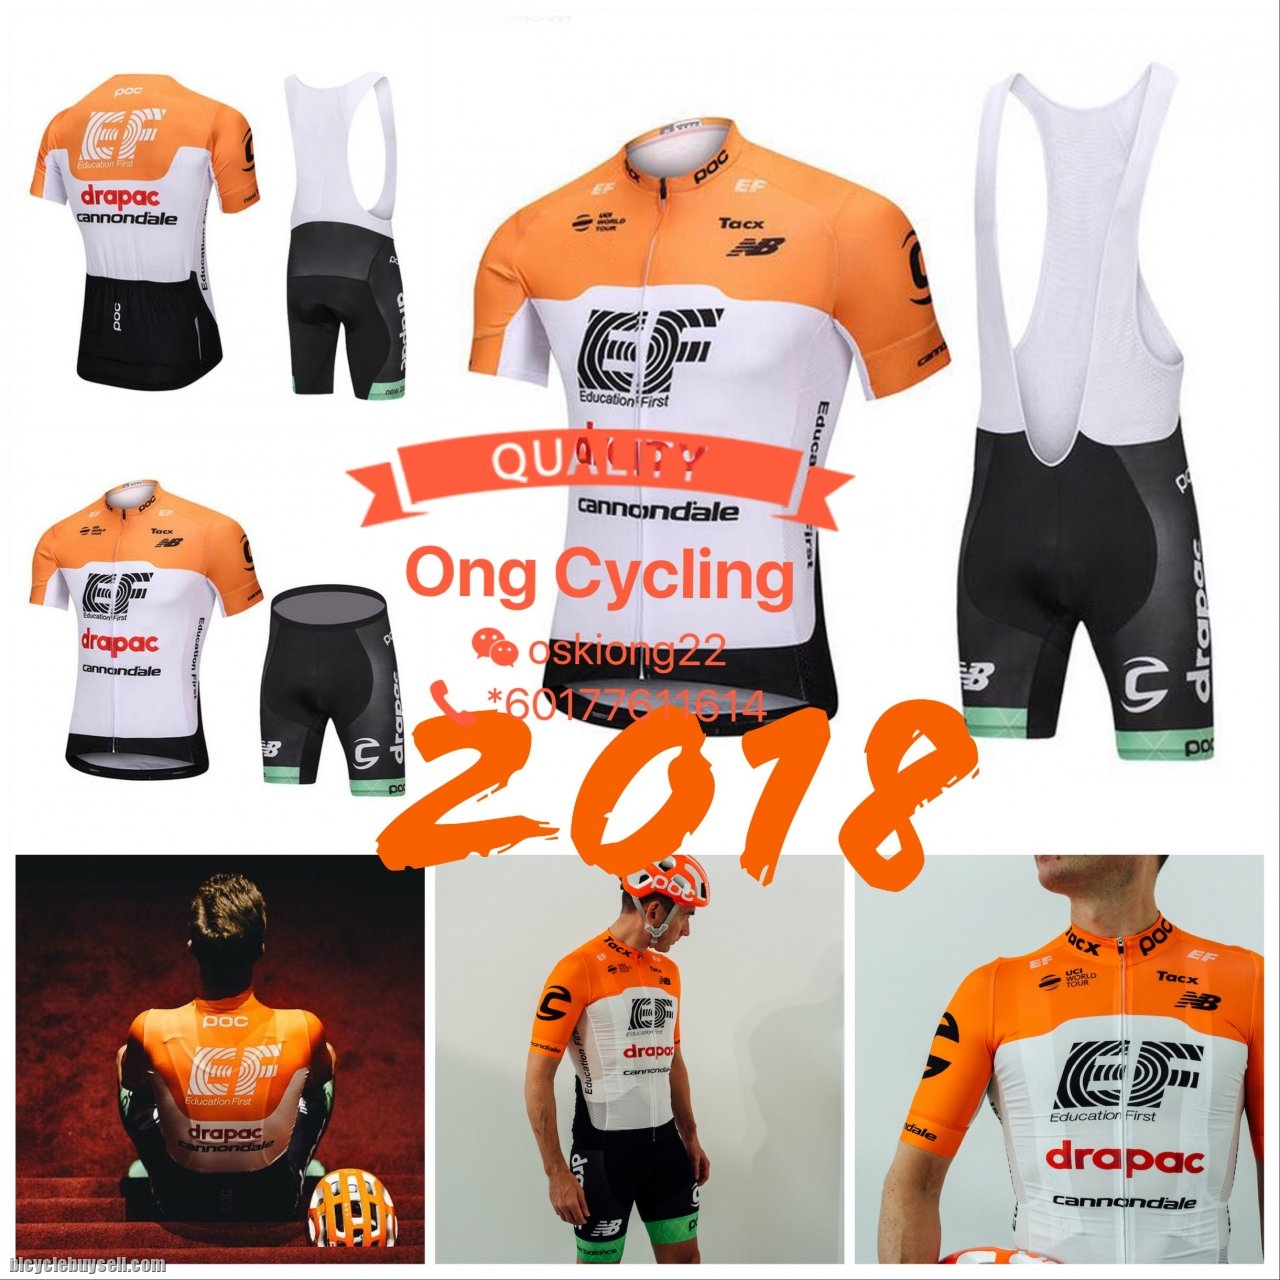 Cannondale 1 - EF Education First-Drapac -Cycling Jersey 05159c105